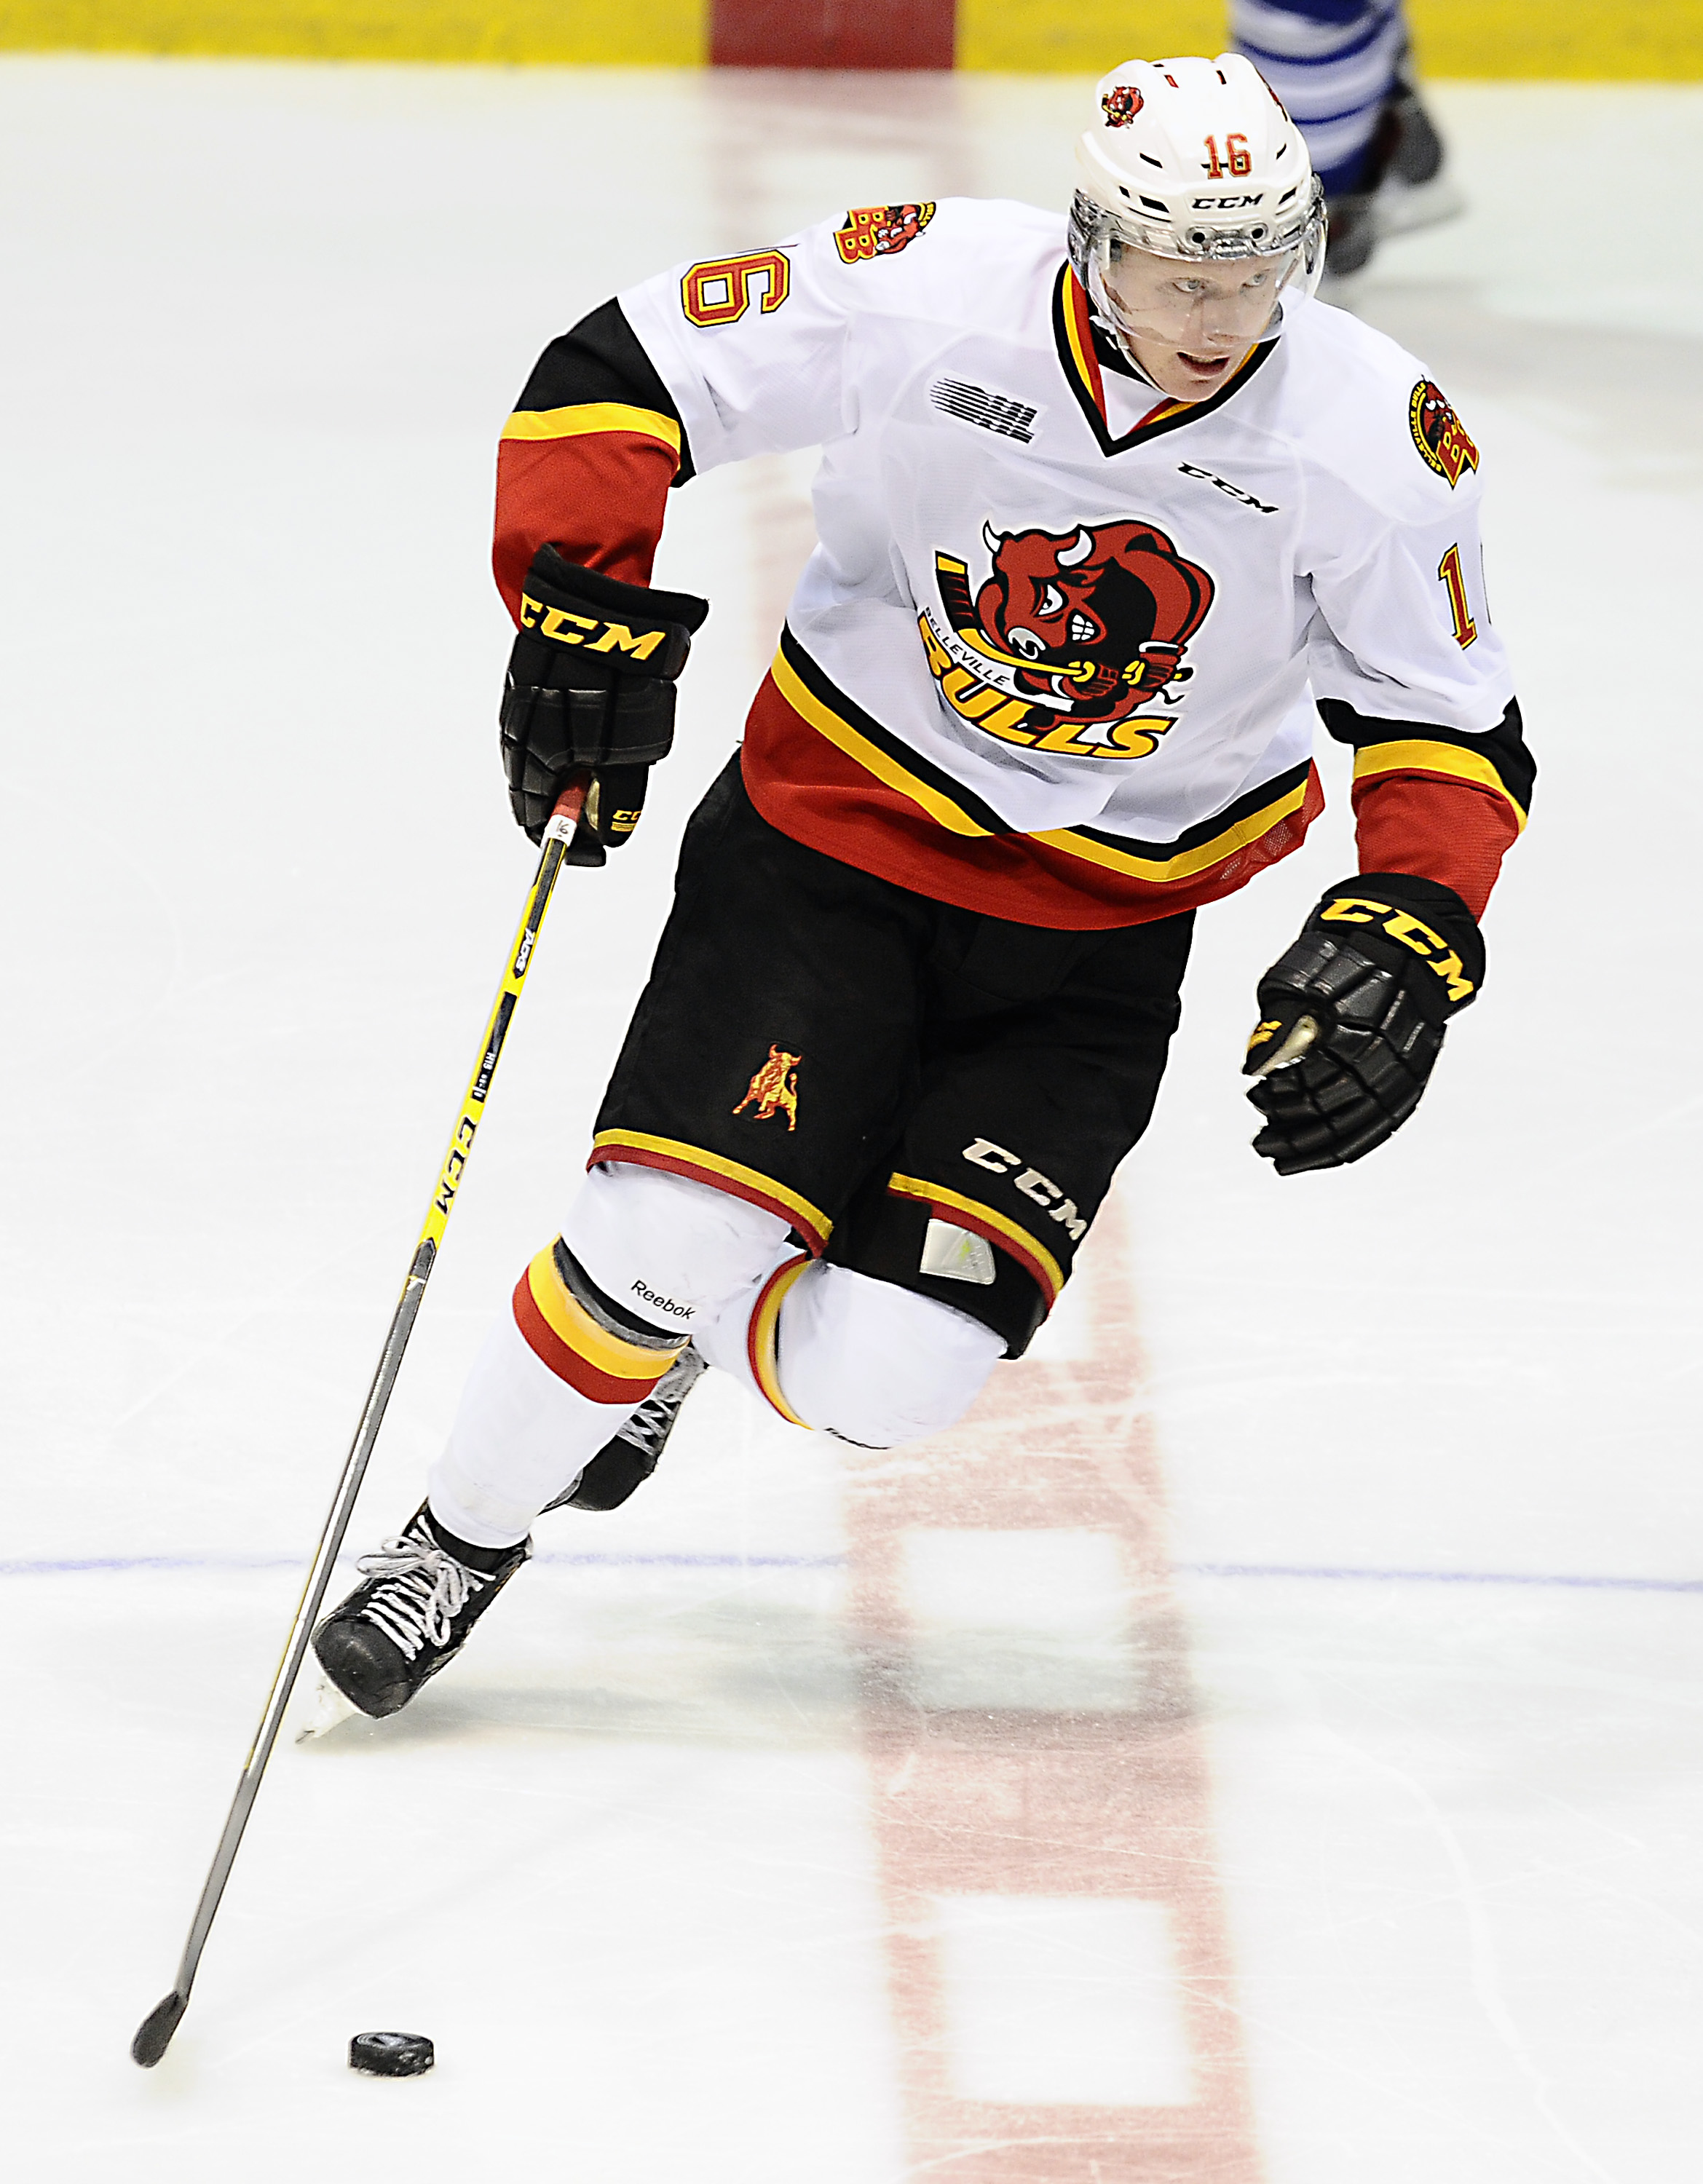 Trent Fox - From Erie to Belleville in 2014-15, but will he even be drafted?  We'll find out in June.